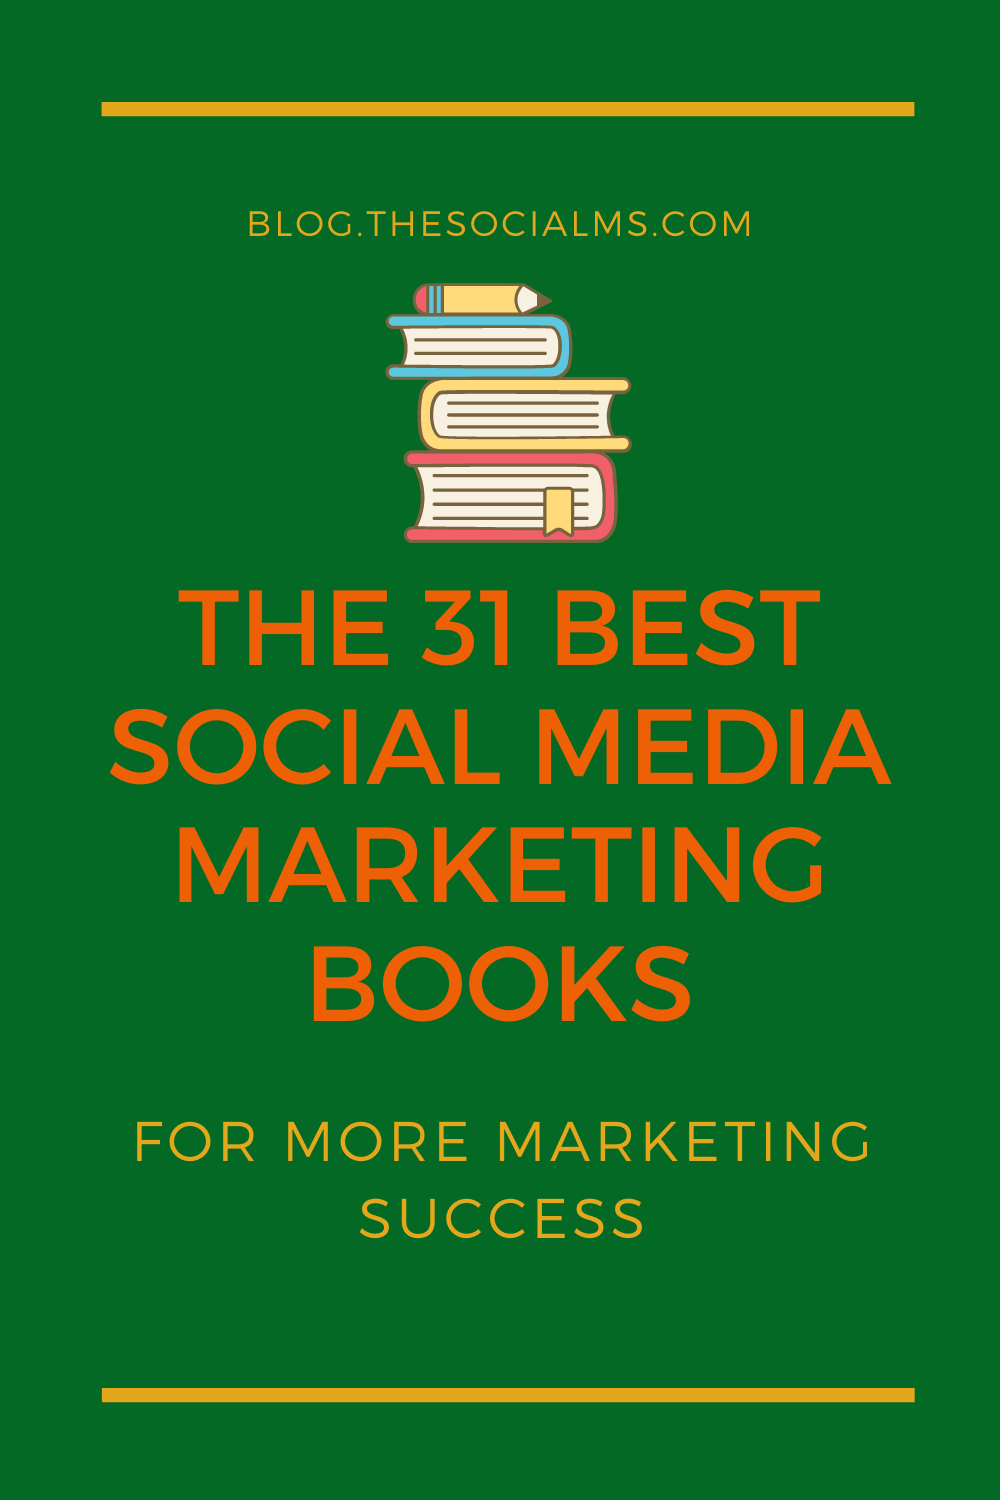 If you are looking for some blogging and social media marketing books to learn something new, get better at marketing, and even get inspiration: Here are the books you need to read! This list contains social media marketing books for advanced marketers as well as for beginners. #socialmediatips #socialmediastrategy #socialmediabooks #socialmediamarketing #socialmediahacks #socialmediaforbloggers #socialmediaforsmallbusiness #marketingbooks #socialmediaadvice